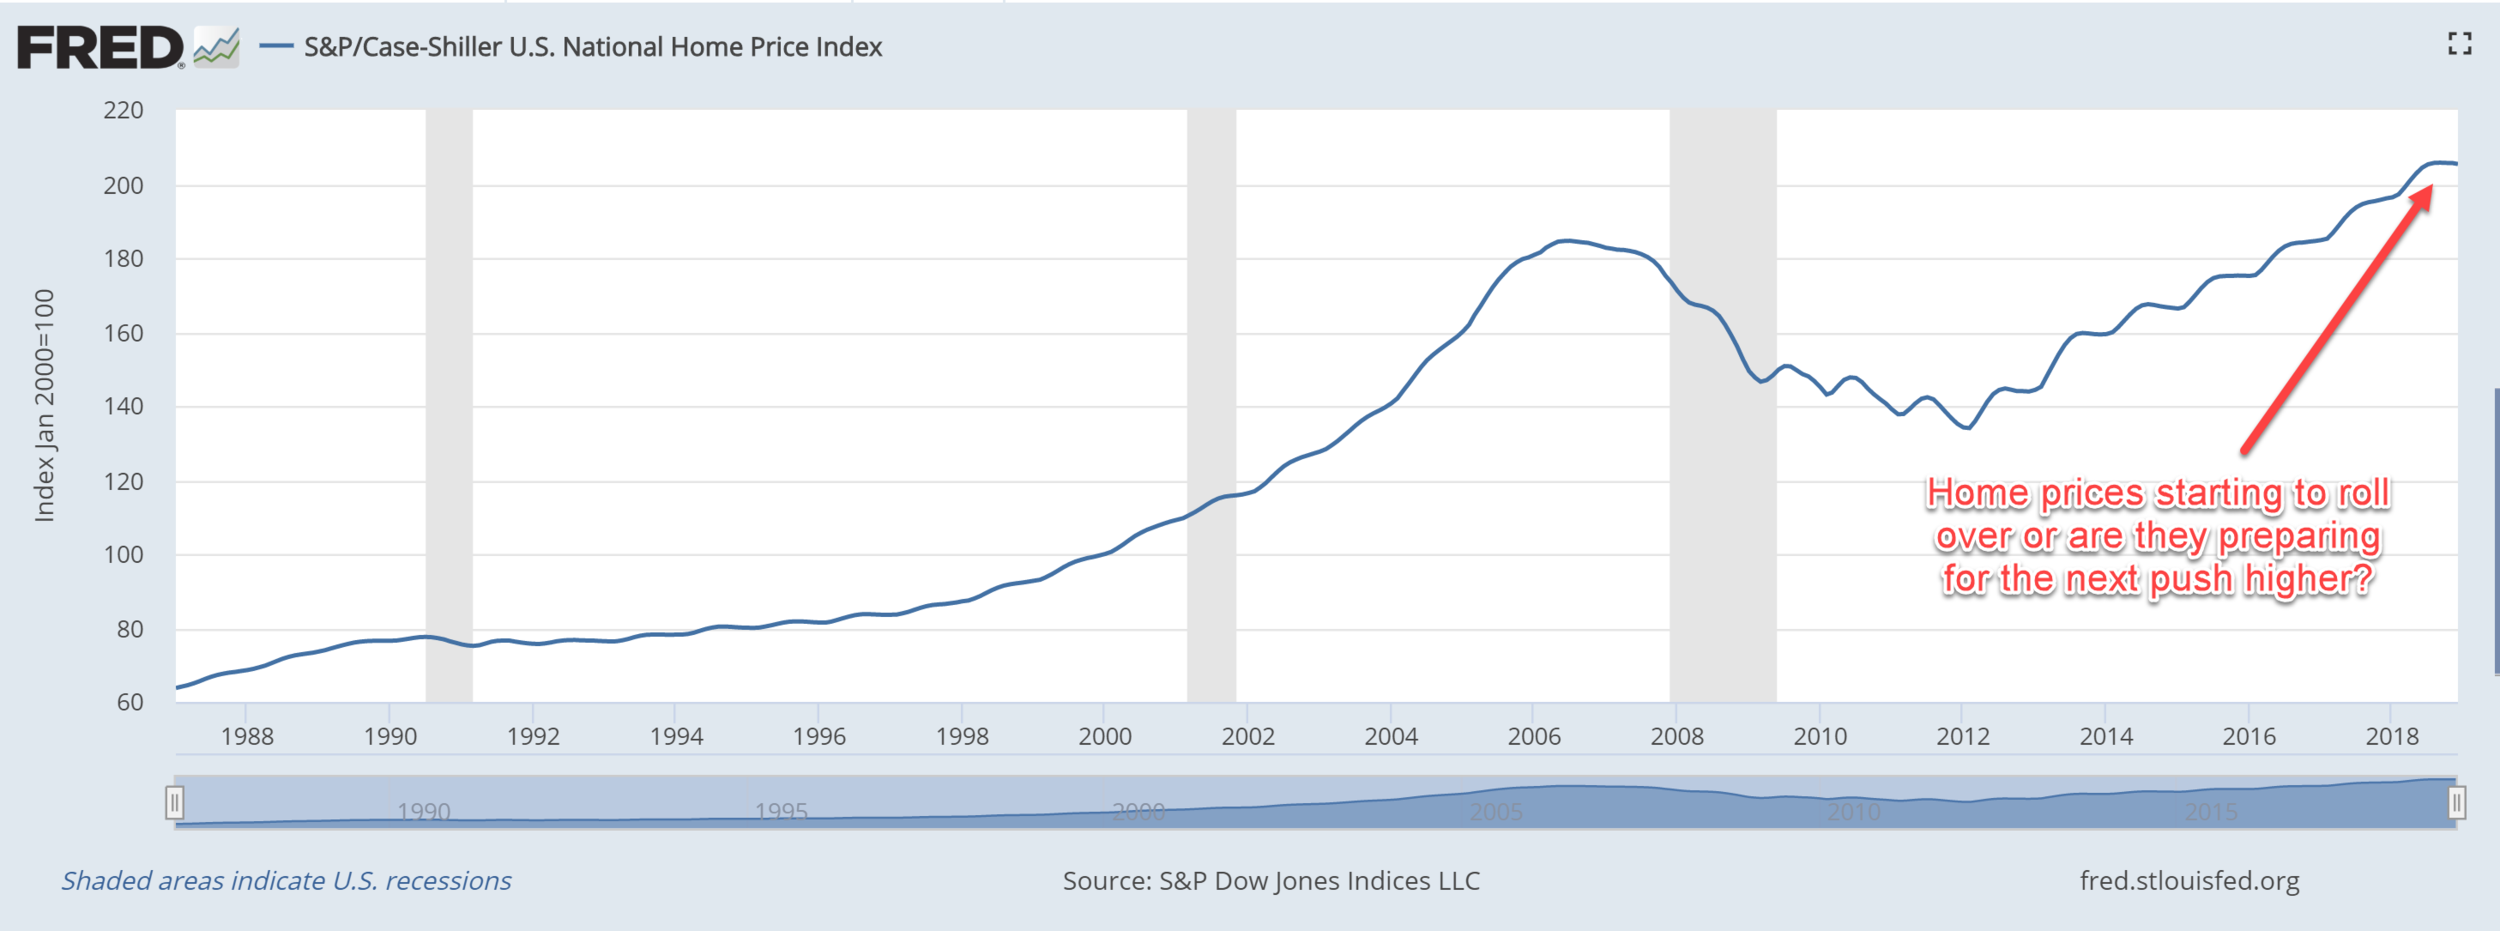 (source: FRED Economic Data, via S&P/Case-Shiller HPI)